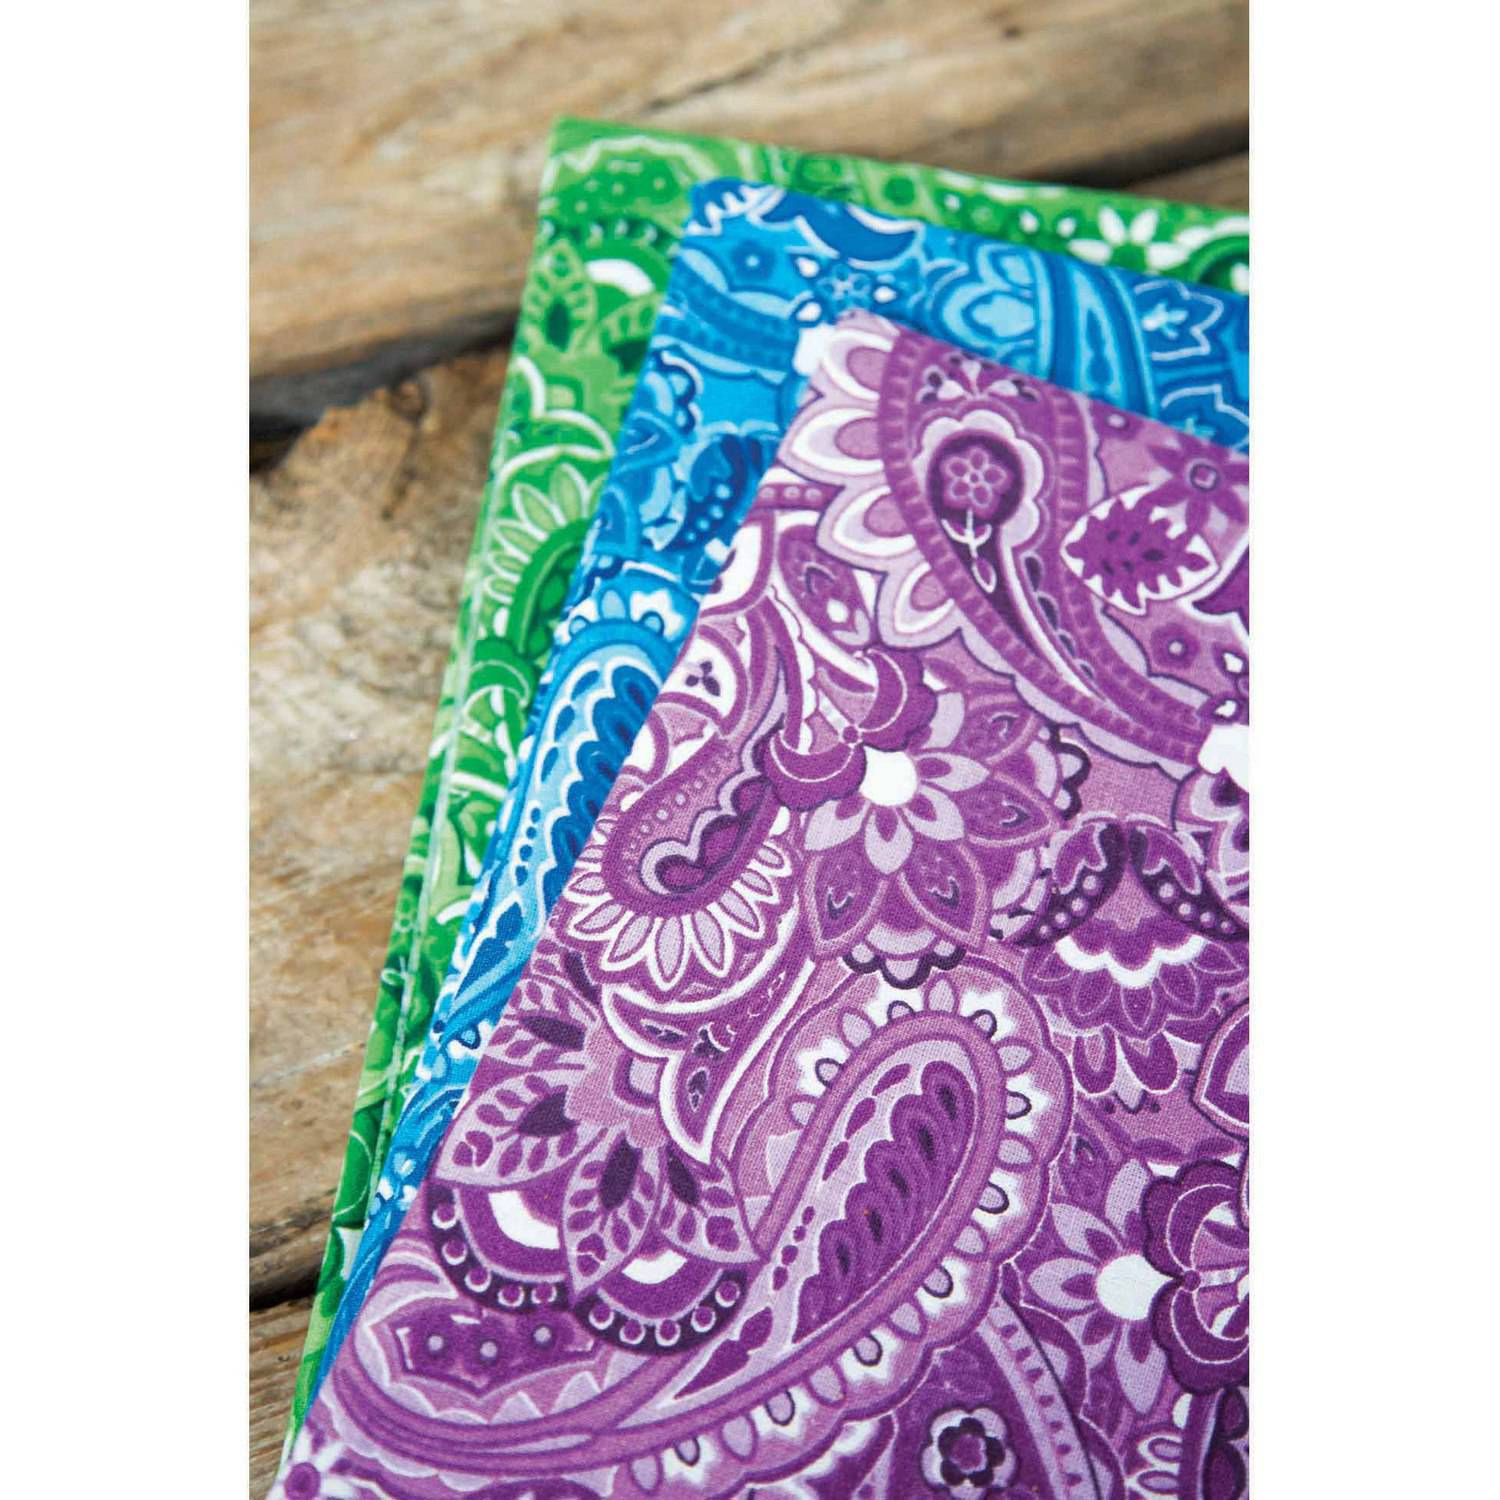 "Paisley Explosion Printed Cotton Fabric Bundle, Gadabout Paisley Purple-Gadabout Paisley Blue-Gadabout Paisley Green, 43/44"" Width, 2-yd Cuts"